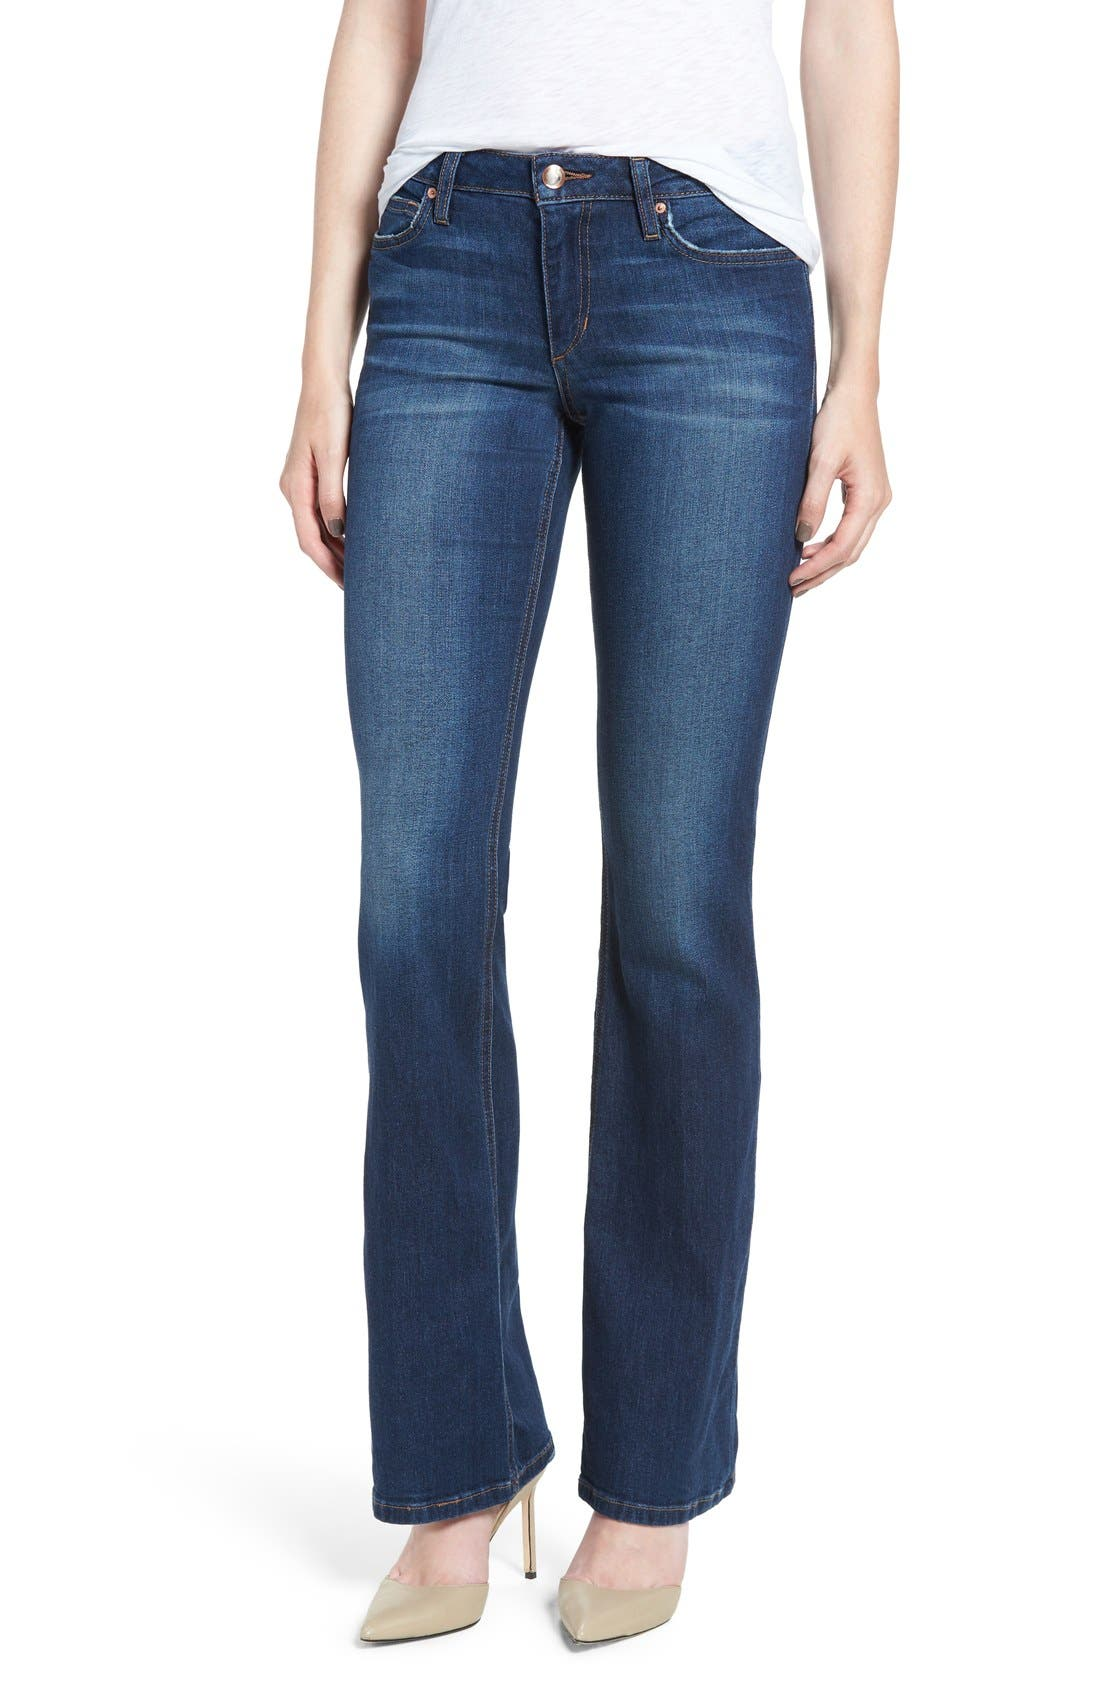 'Flawless - Honey' Curvy Bootcut Jeans,                             Alternate thumbnail 5, color,                             410